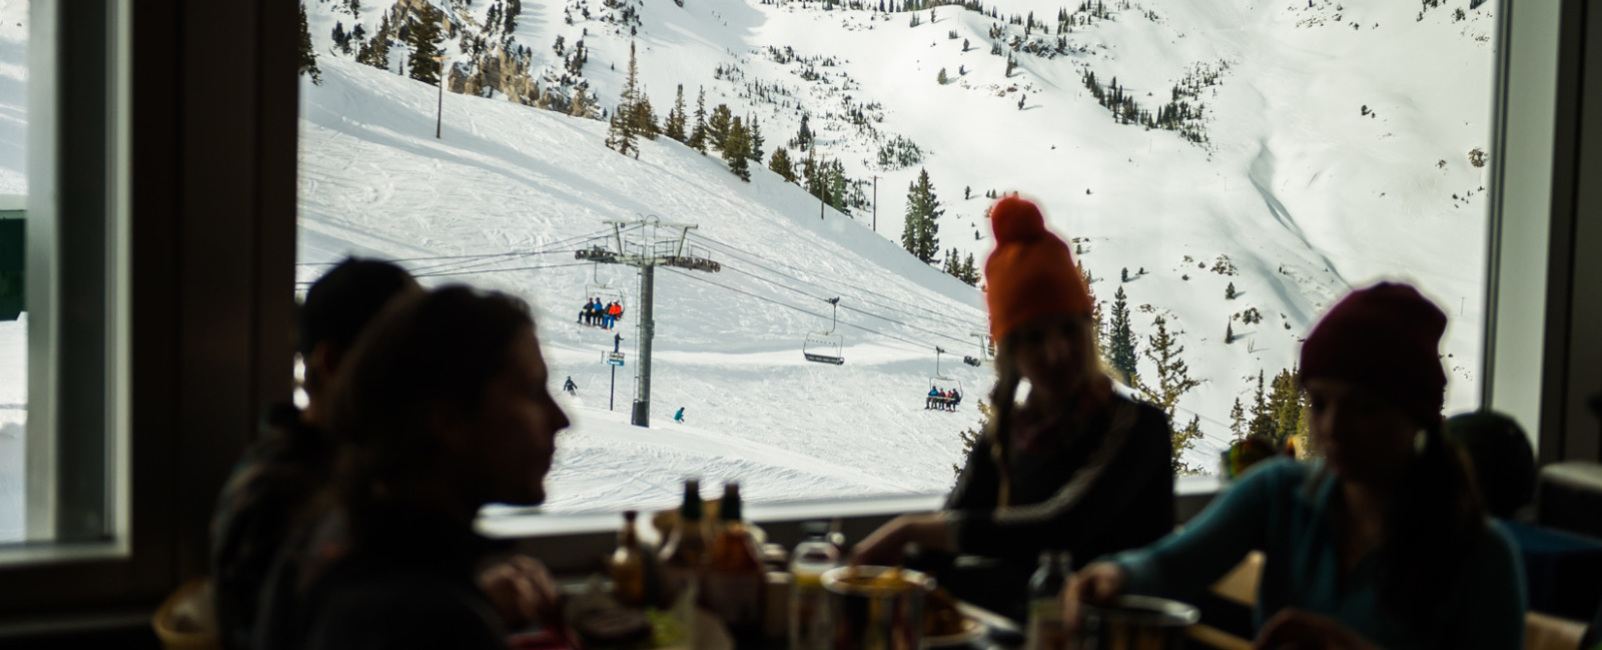 8 Reasons To Choose Utah for Your First Western Ski Trip